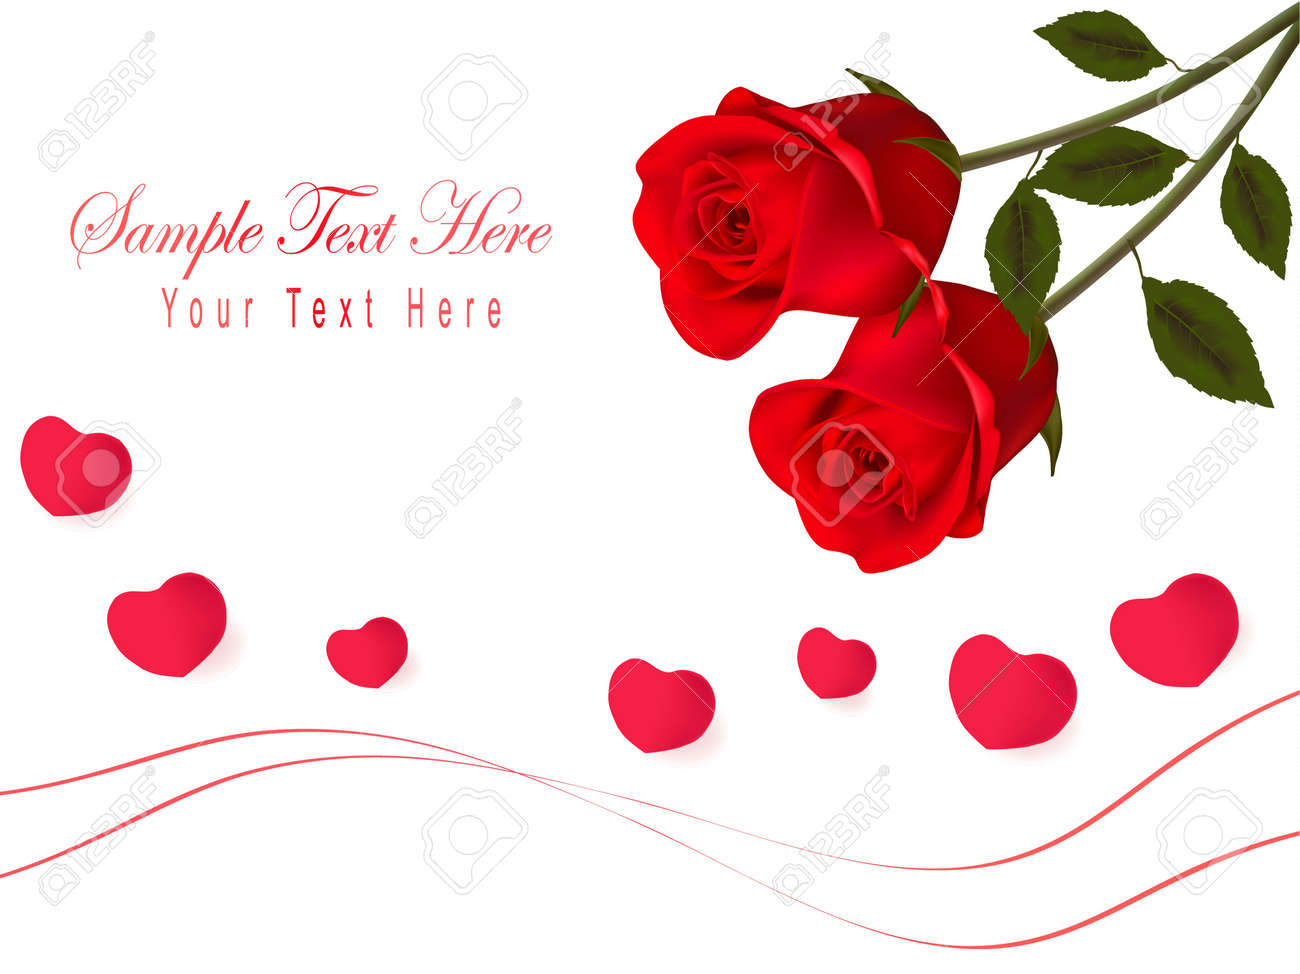 Valentines Day Card Red Roses And Gift Red Bow Illustration – Valentines Day Gift Card